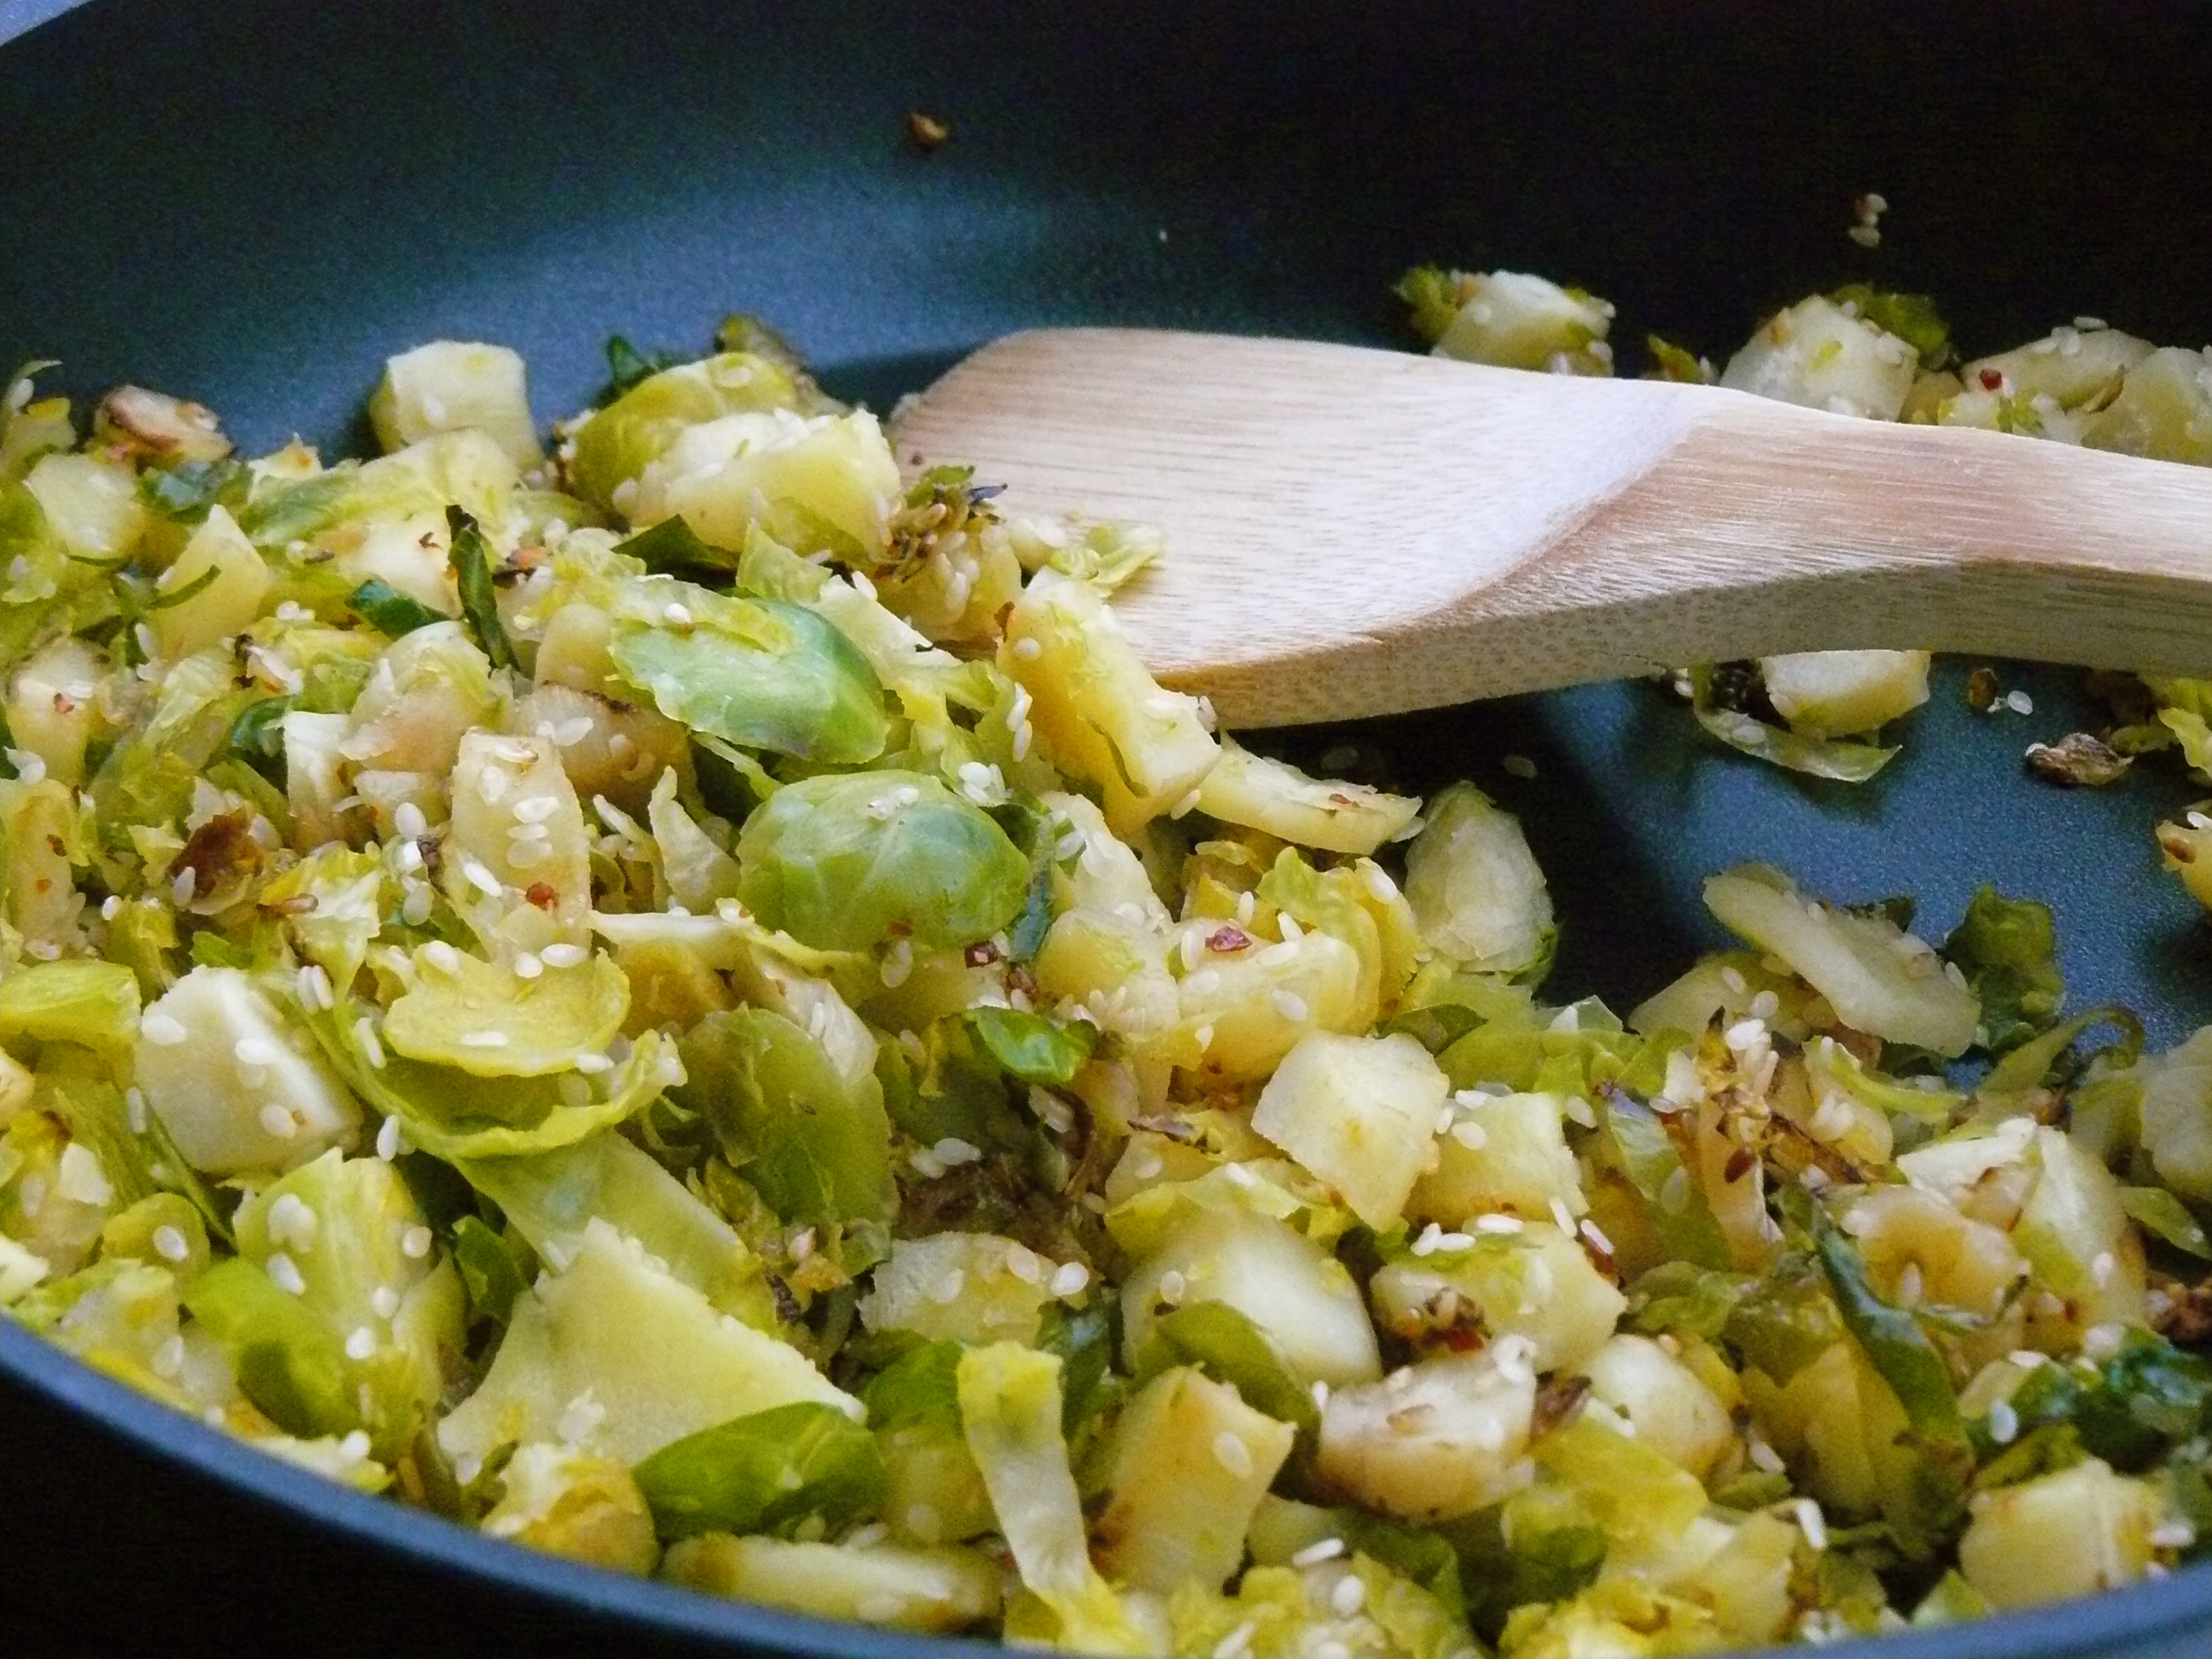 Spicy Sprouts And Parsnips